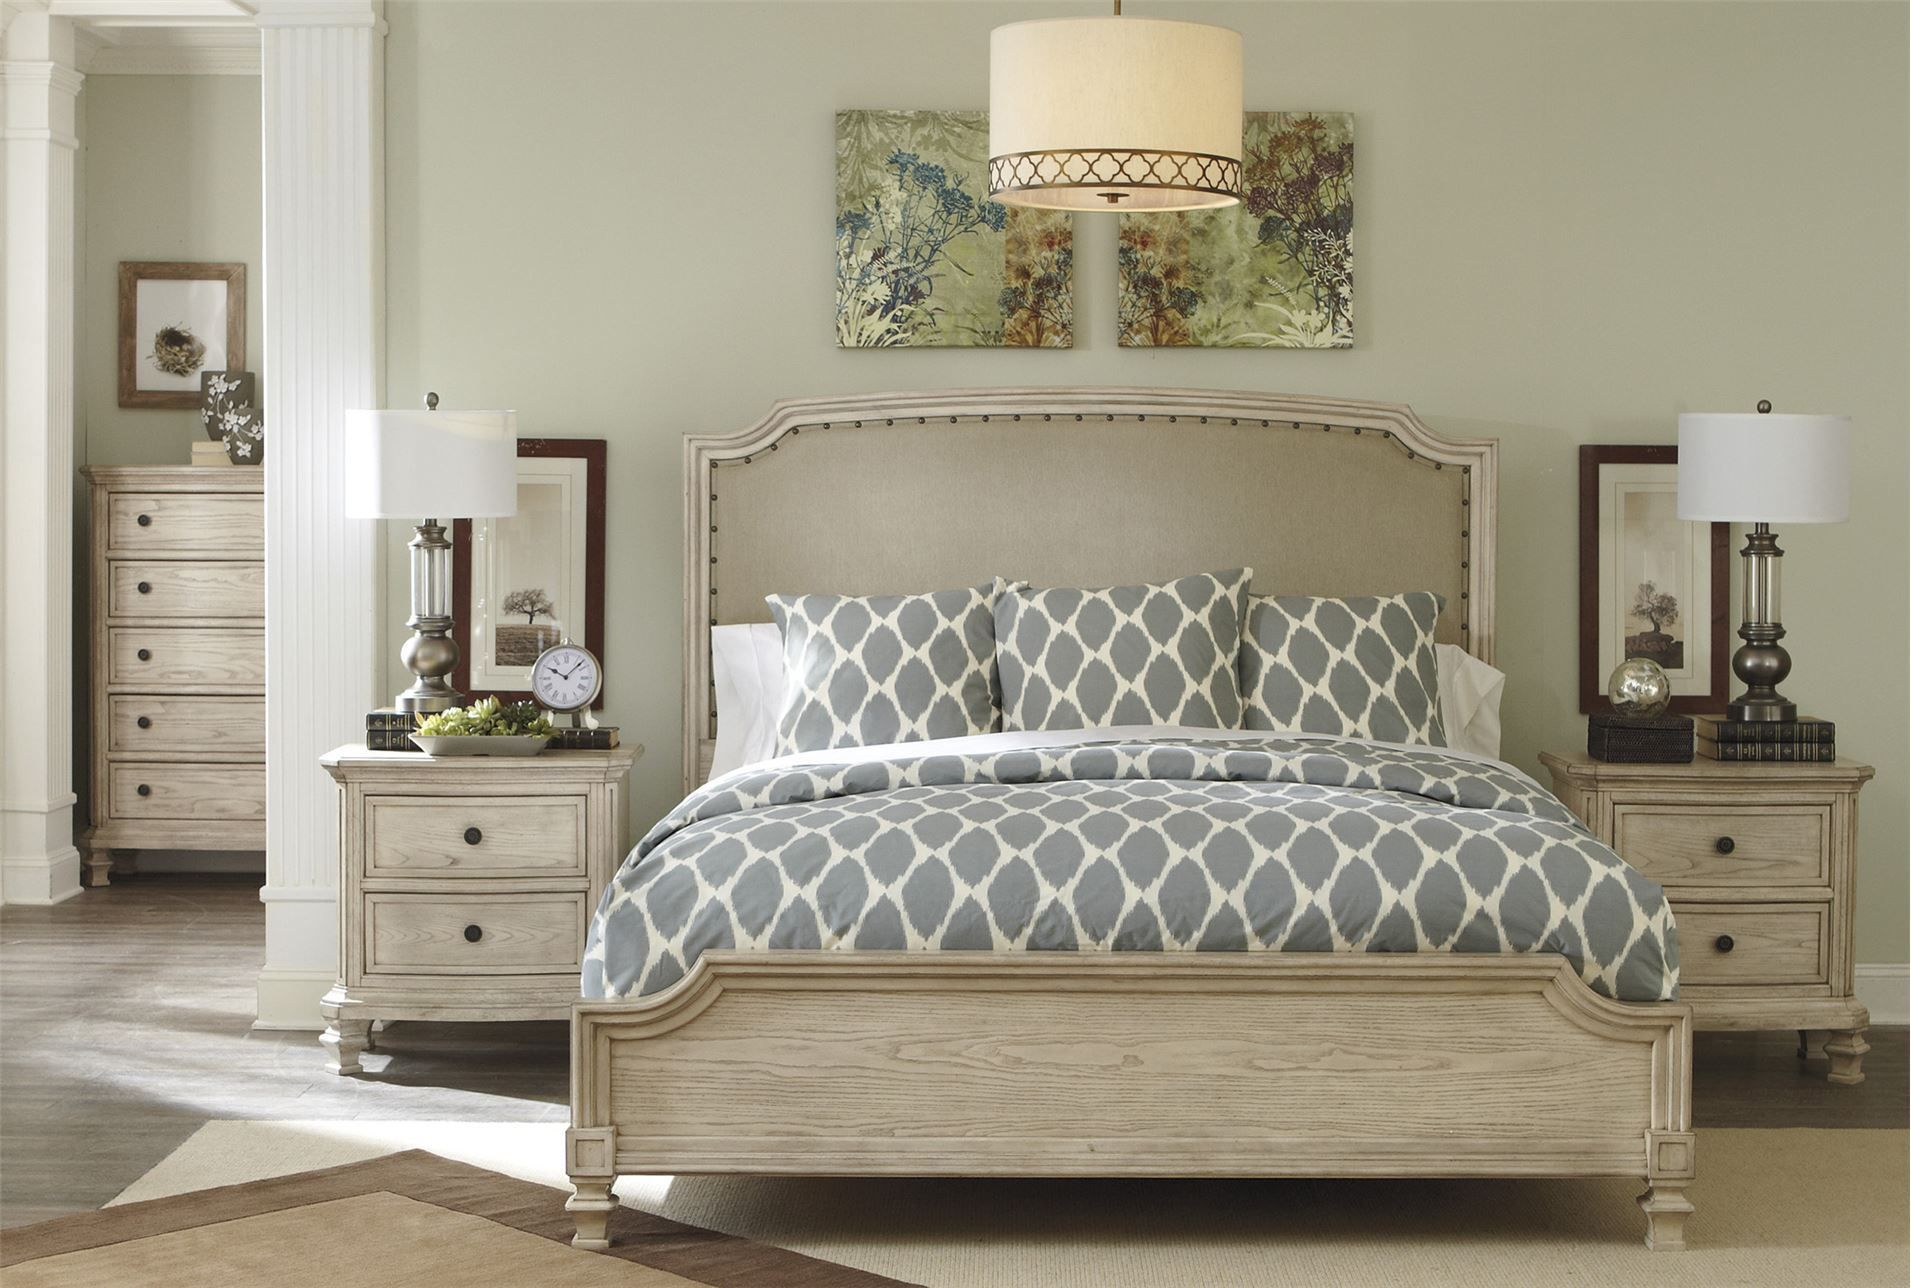 Demarlos Queen Panel Bed Frame From Living Spaces Like